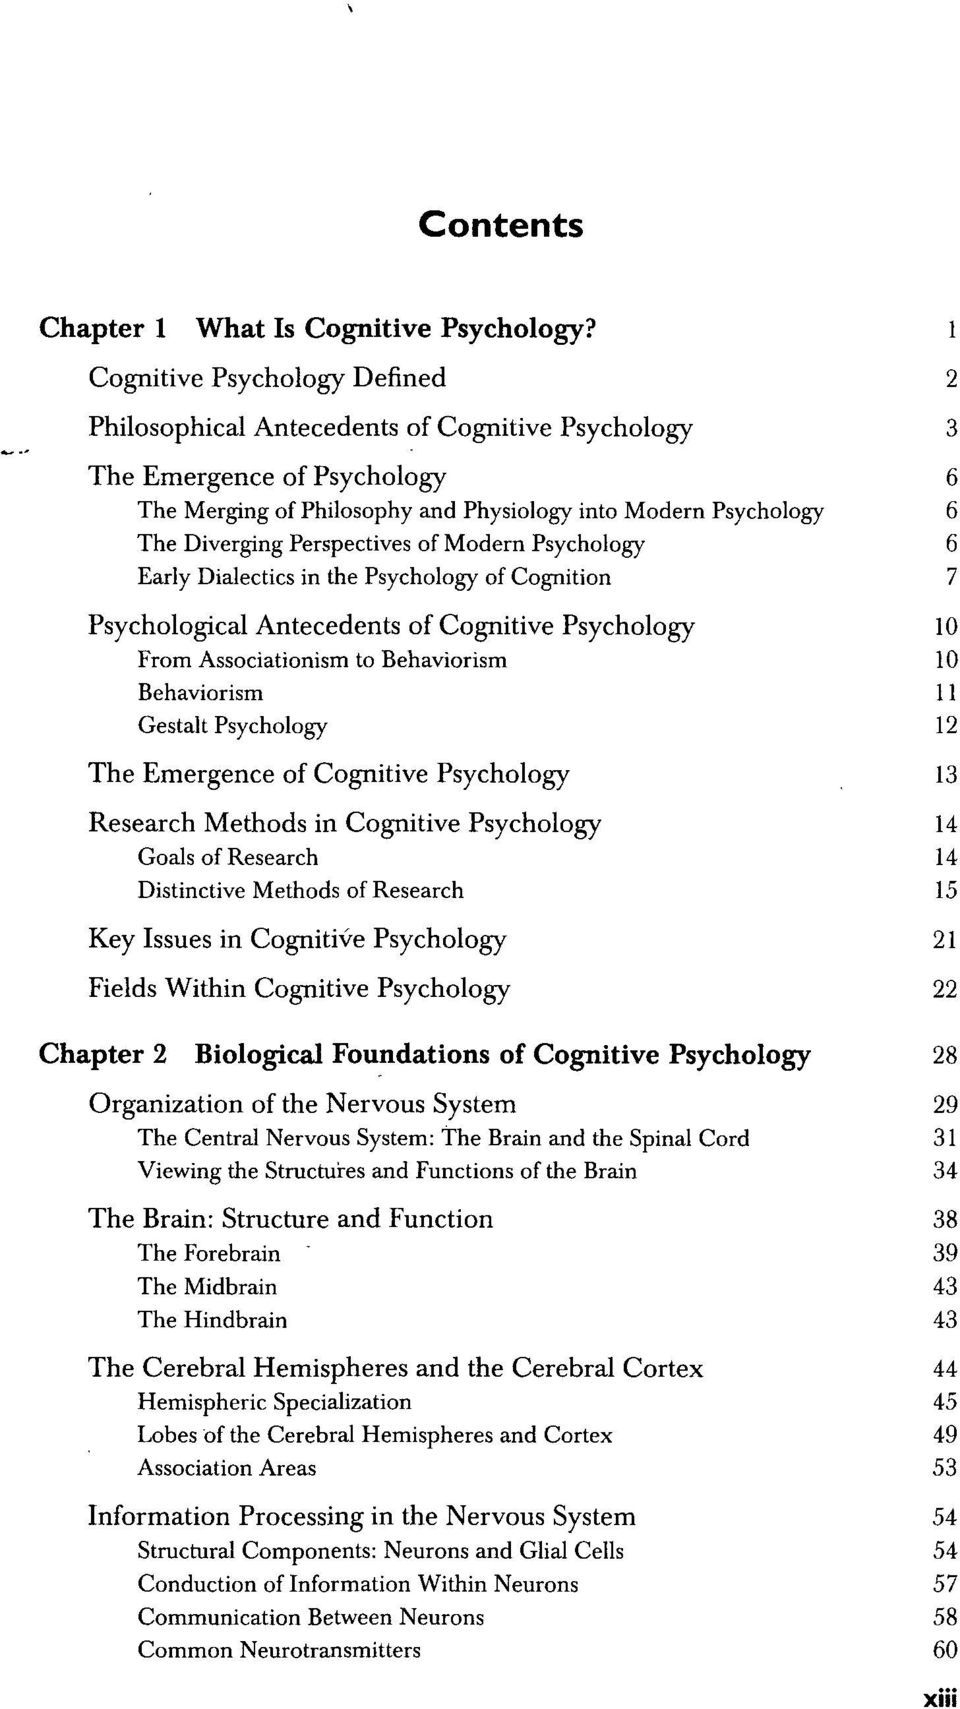 Perspectives of Modern Psychology 6 Early Dialectics in the Psychology of Cognition 7 Psychological Antecedents of Cognitive Psychology 10 From Associationism to Behaviorism 10 Behaviorism 11 Gestalt